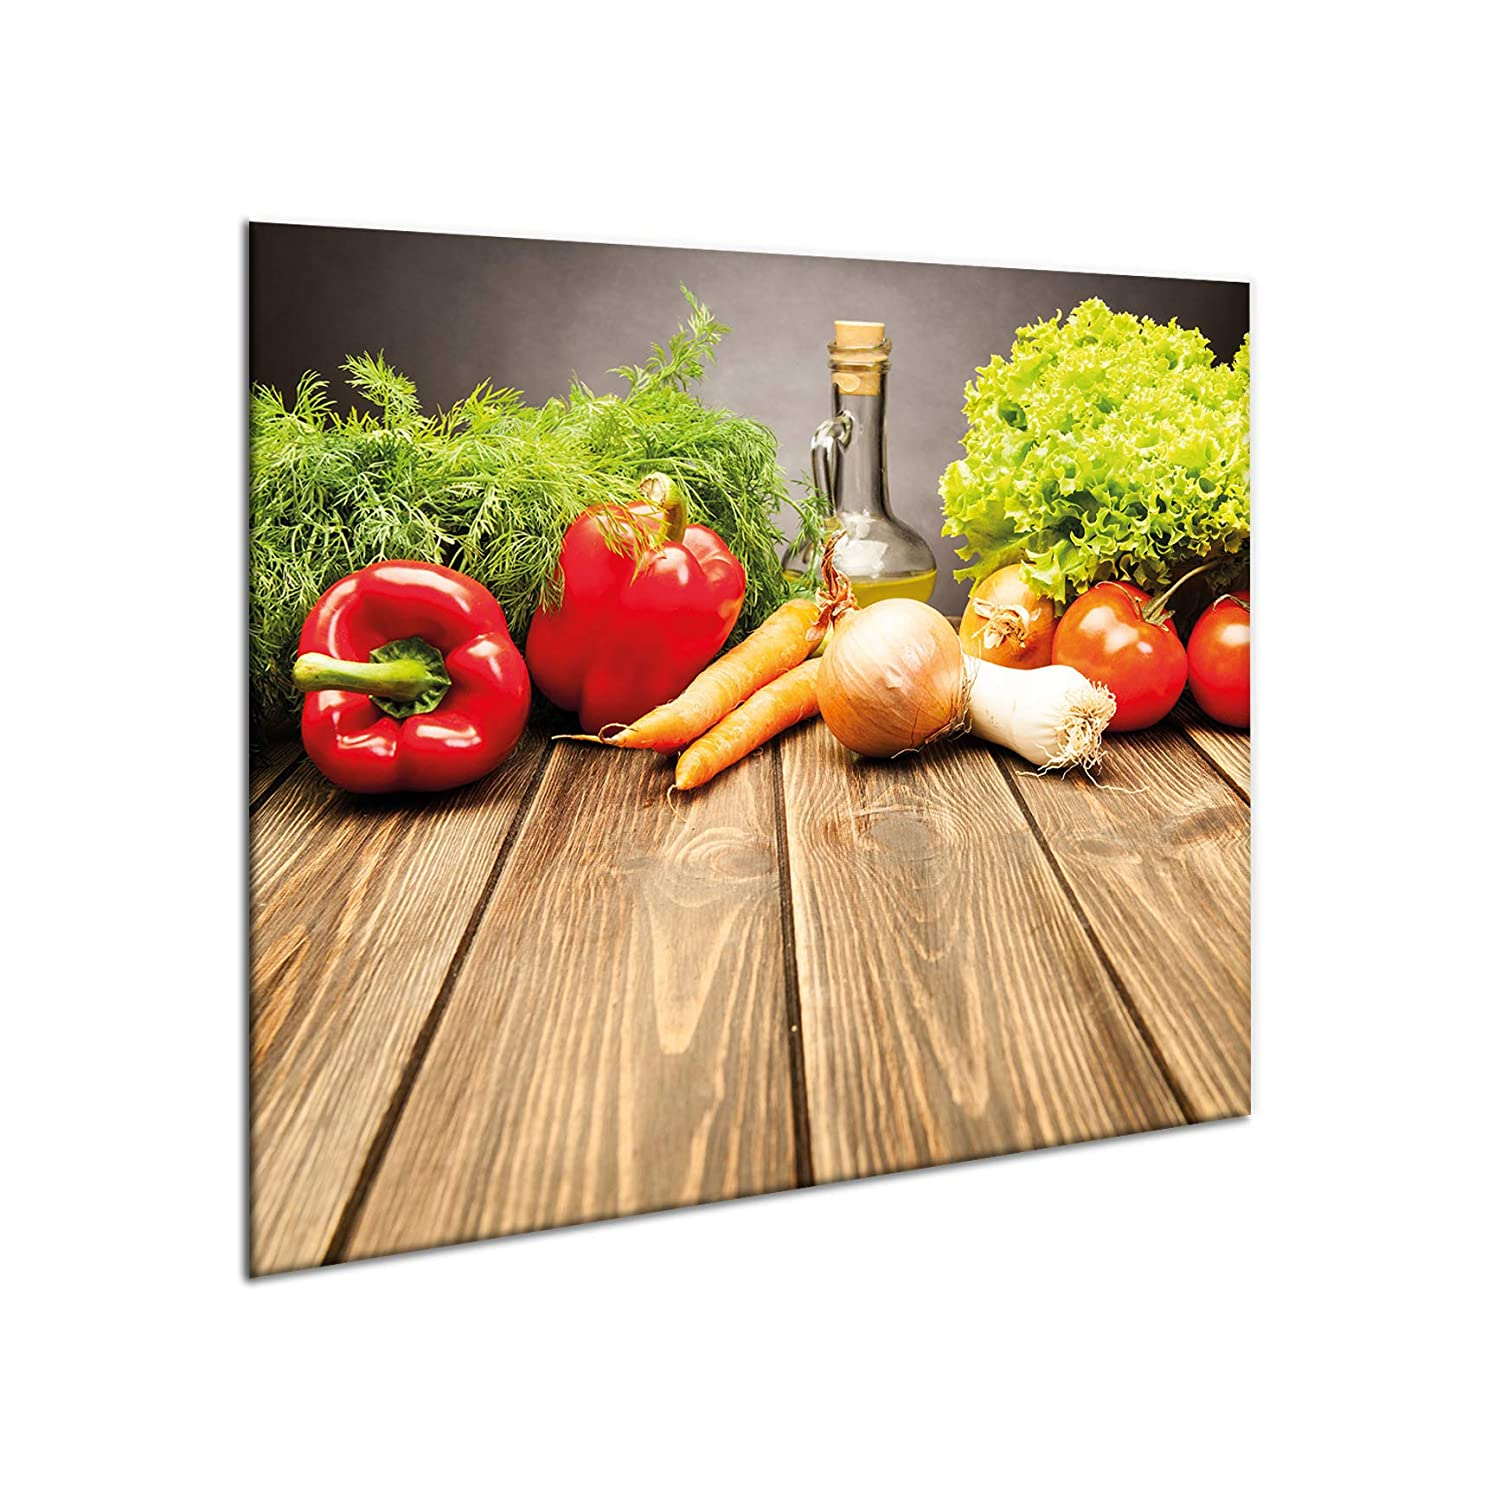 Glass hob protector | Giant chopping board | Splash-back guard | 60cm x 52cm large universal worktop saver for induction electric ceramic halogen cookers | Hardened glass multi-use panel | Stove protector plate | Heat resistant & durable | by Sema Des